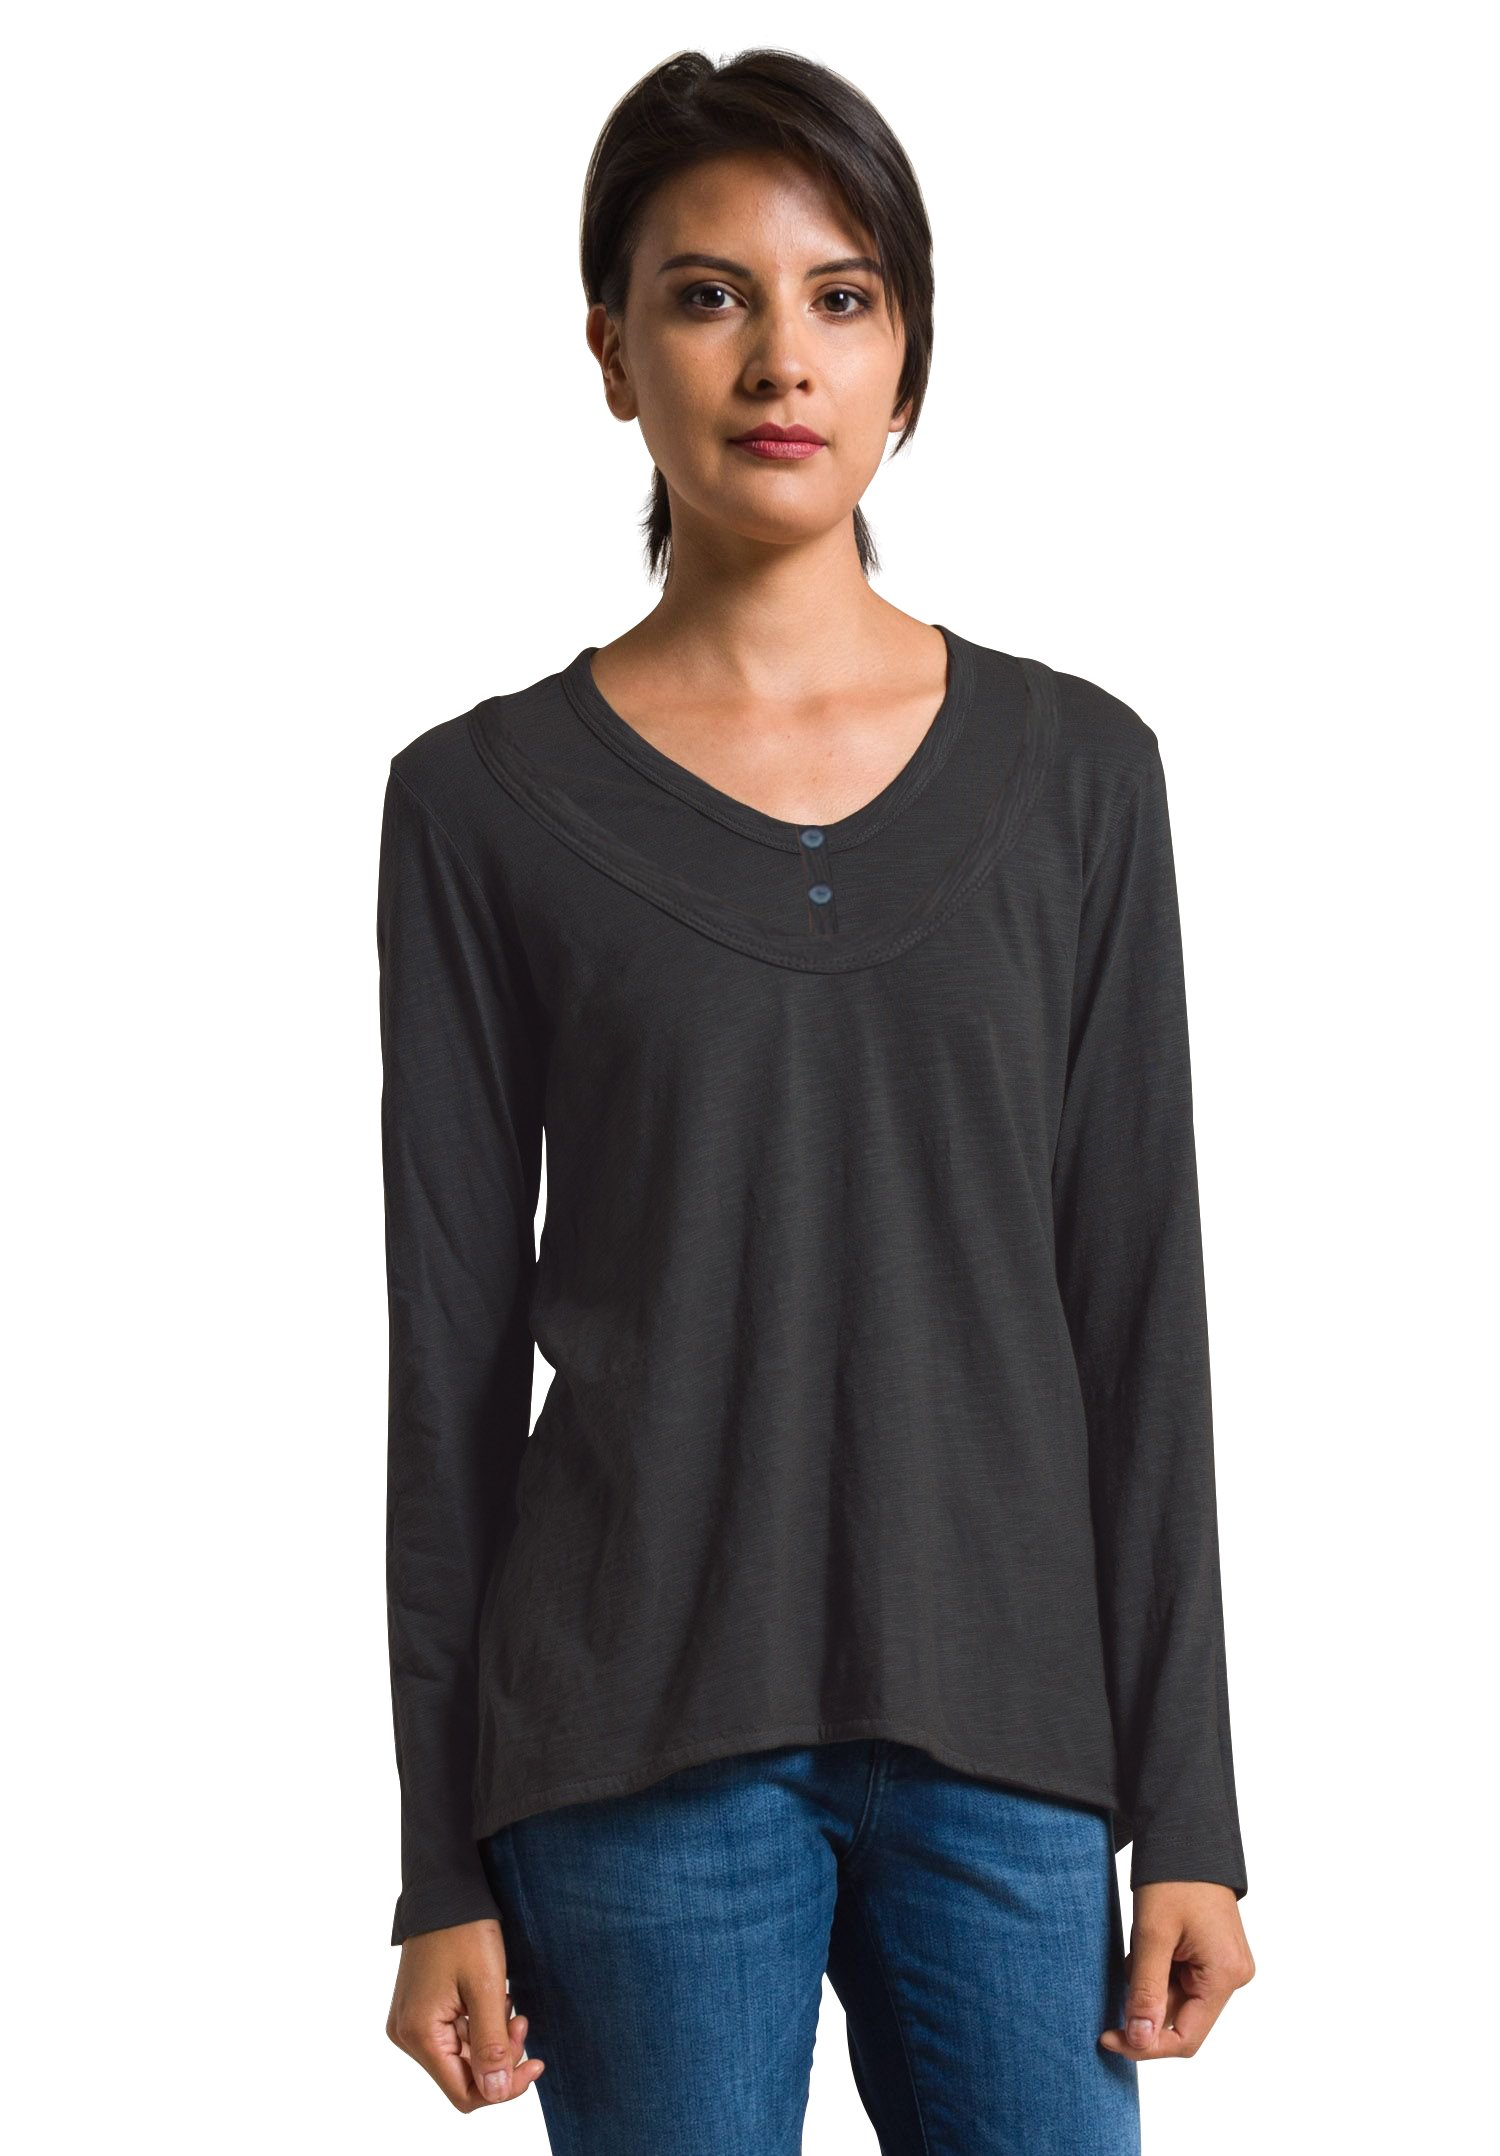 Wilt Women's Mock Layered Long Sleeve Shrunken Henley, Black, Medium by Wilt